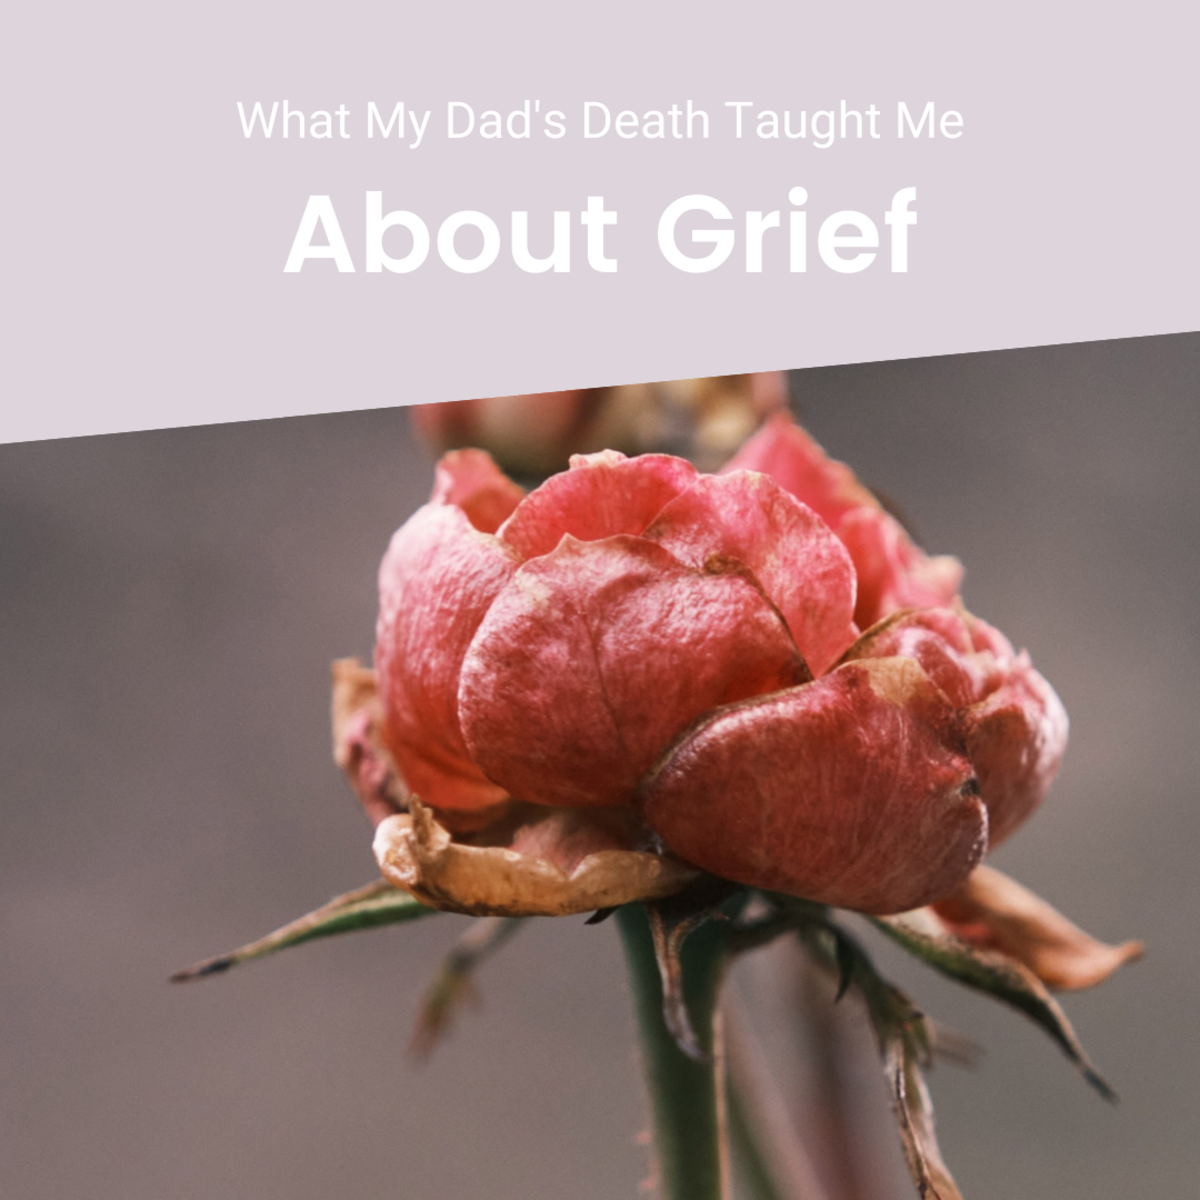 My dad died by suicide three years ago. Here's my experience of going through the stages of grief and what I've learned about grief itself.